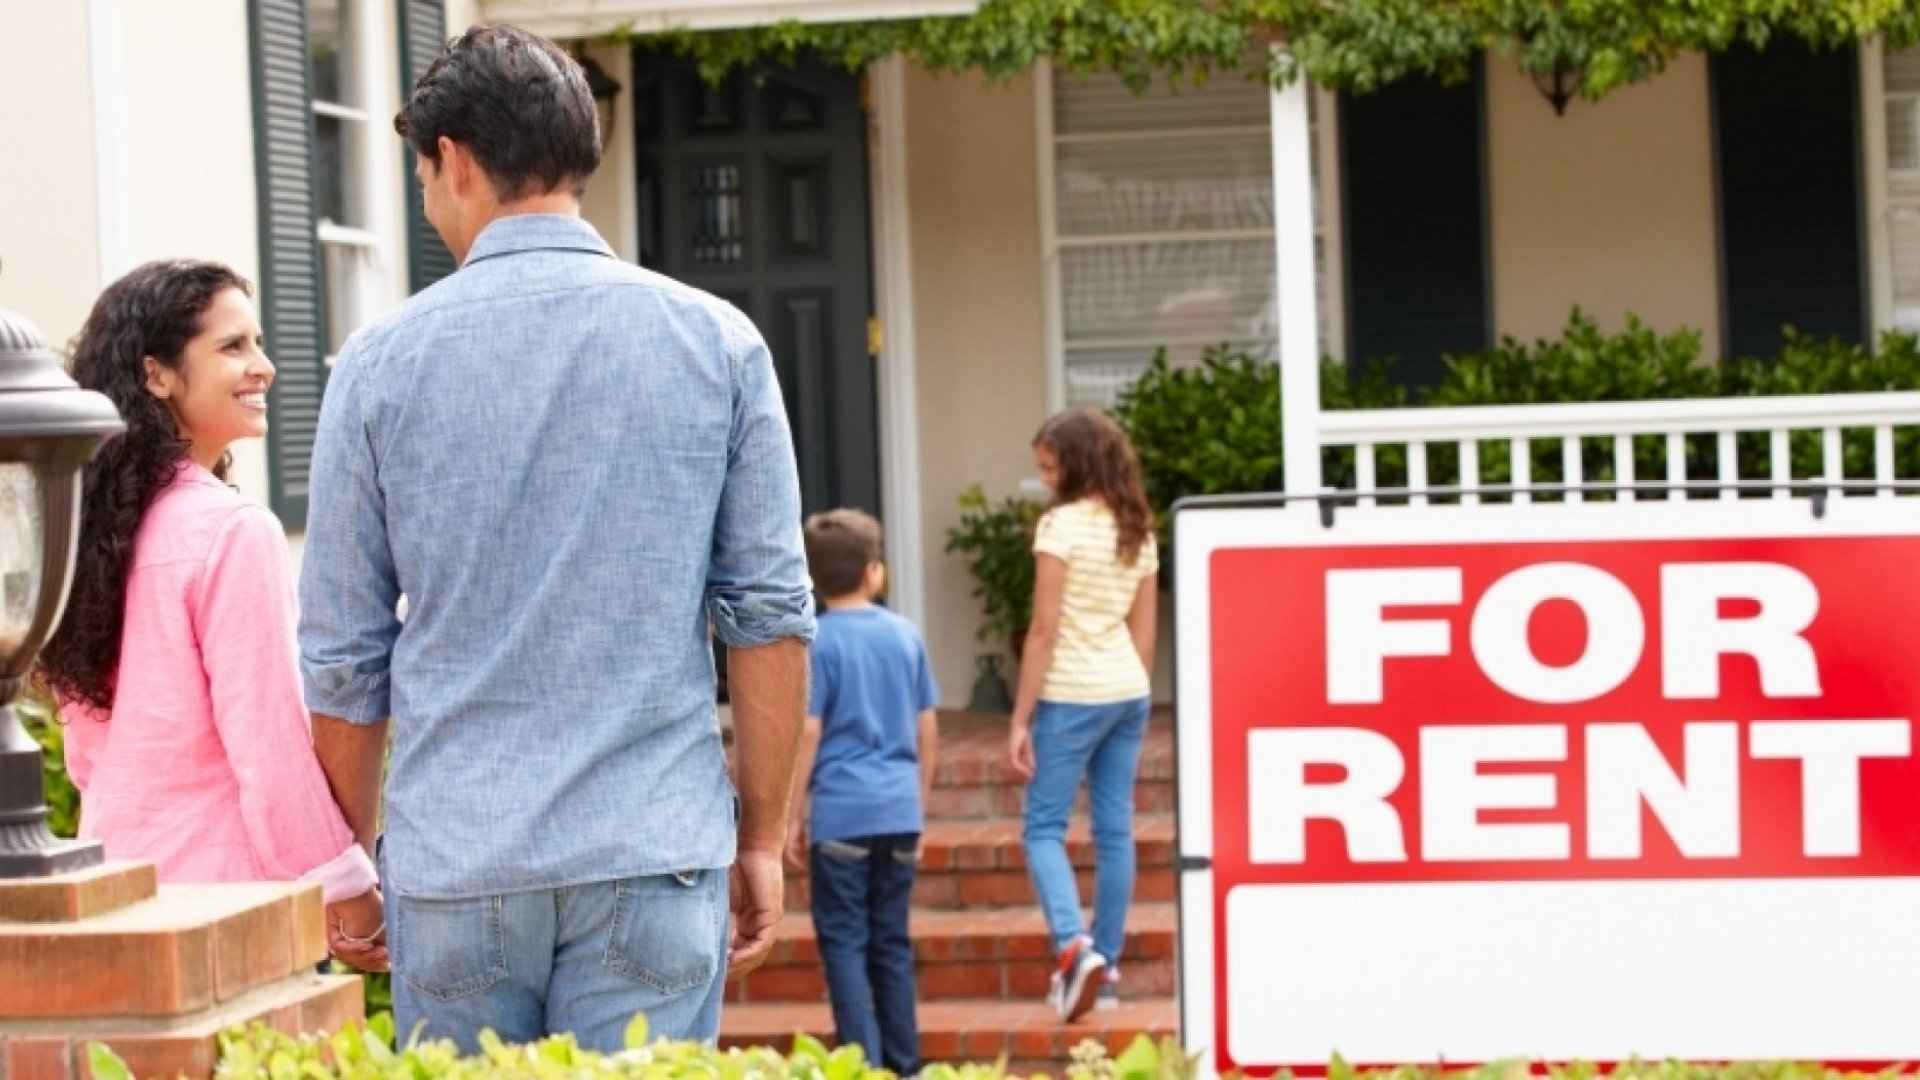 Want to Be Smart With Your Rental Property? 4 Tax Basics You Need to Know